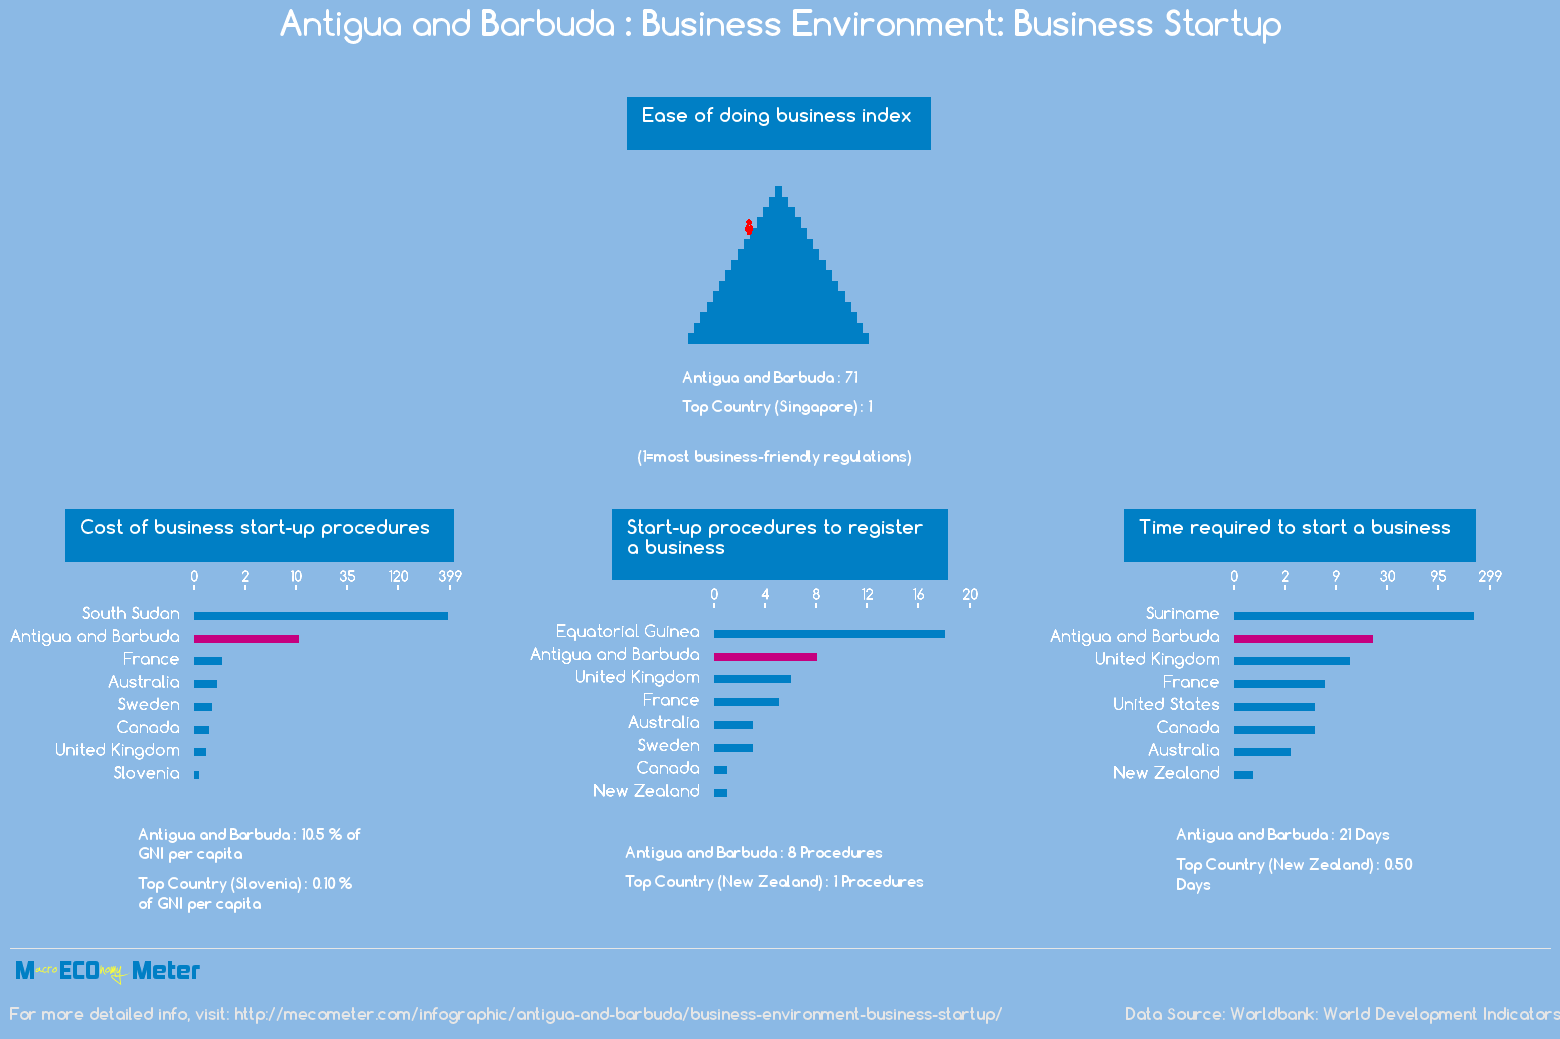 Antigua and Barbuda : Business Environment: Business Startup